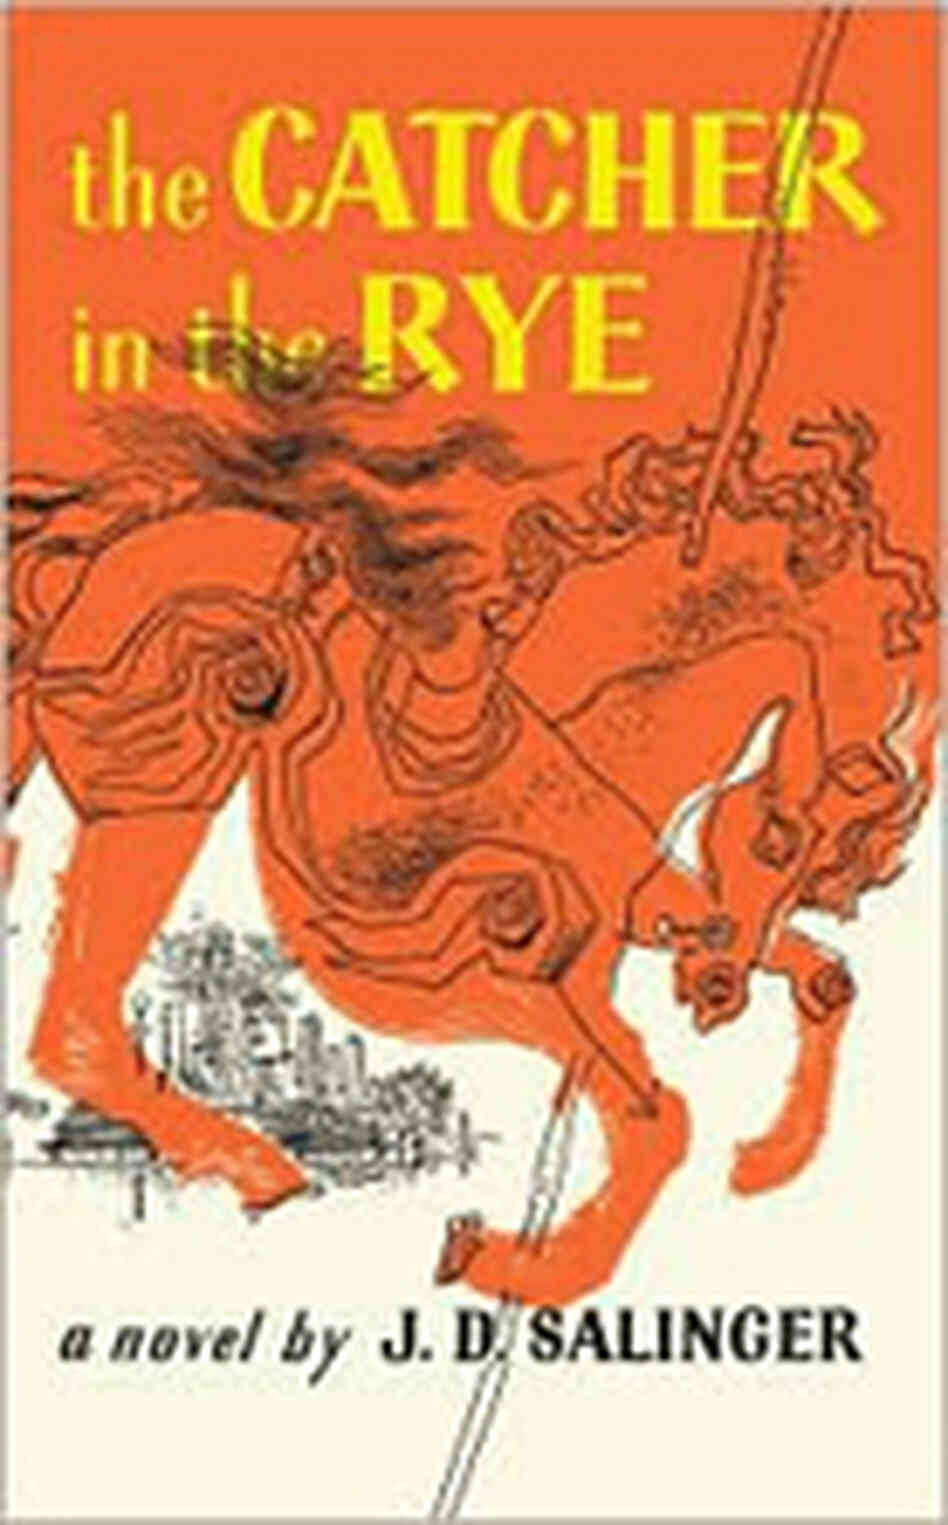 the catcher in the rye holden caulfield essay drodgereport the catcher in the rye holden caulfield essay